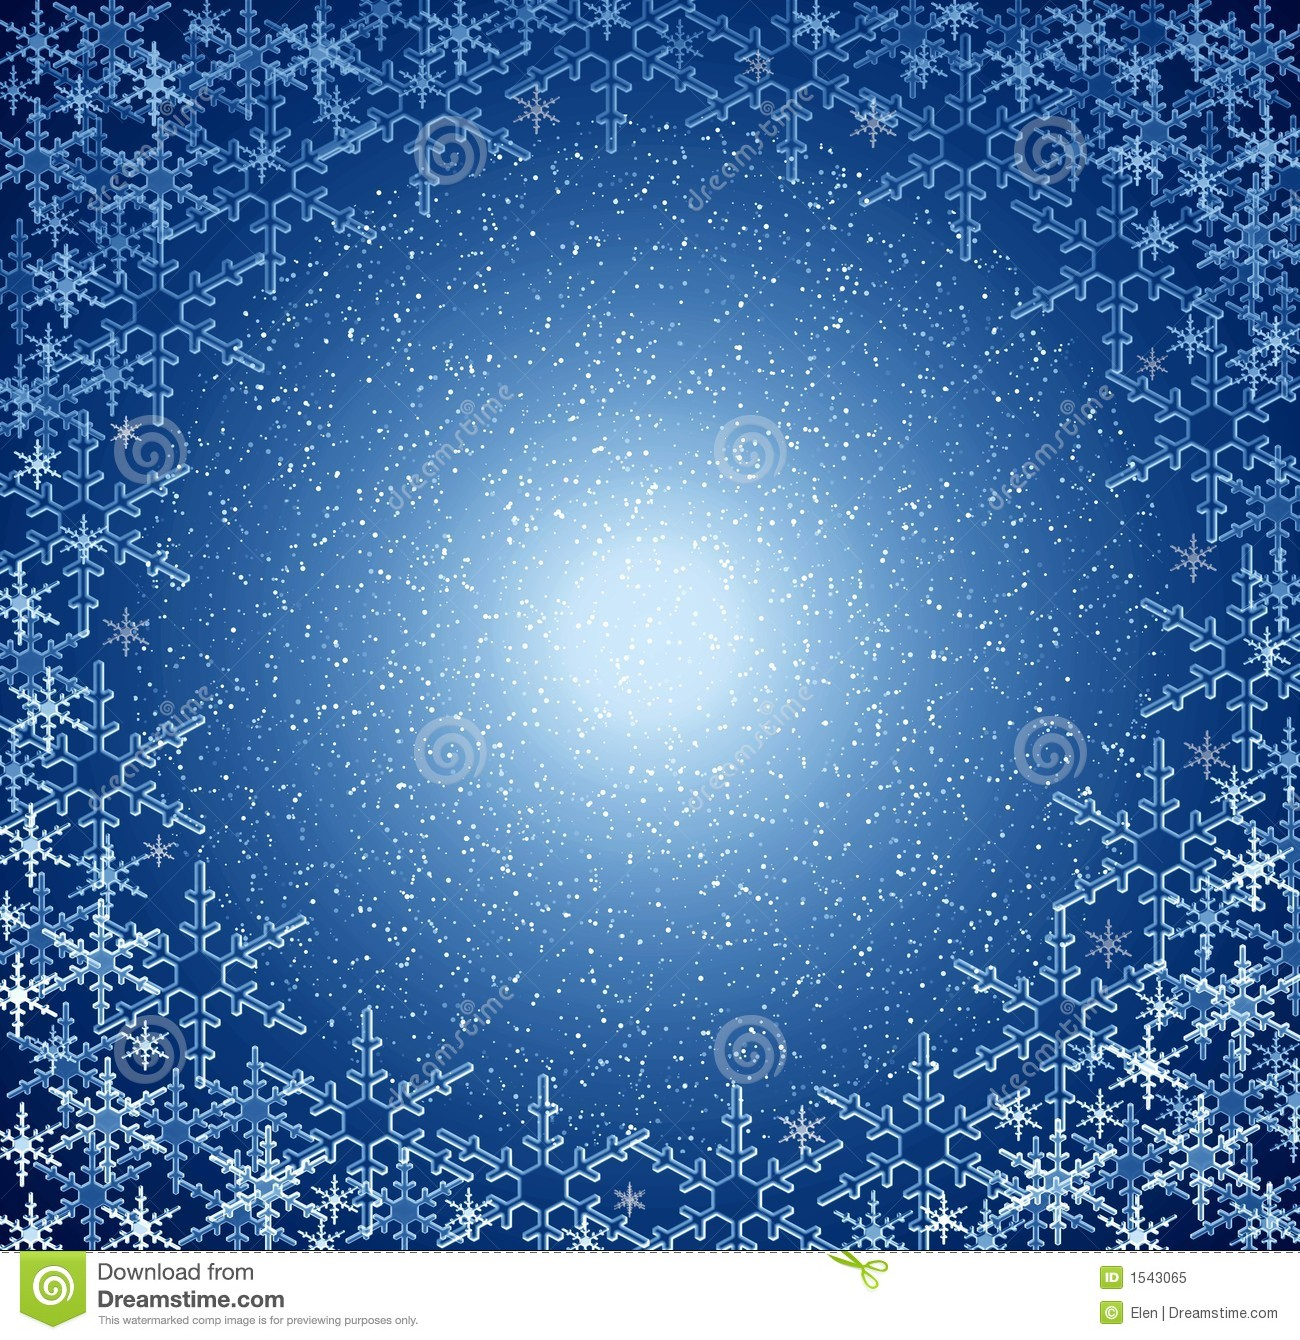 Free 3d Snow Falling Wallpaper Christmas Blue Snow Frame Royalty Free Stock Photo Image